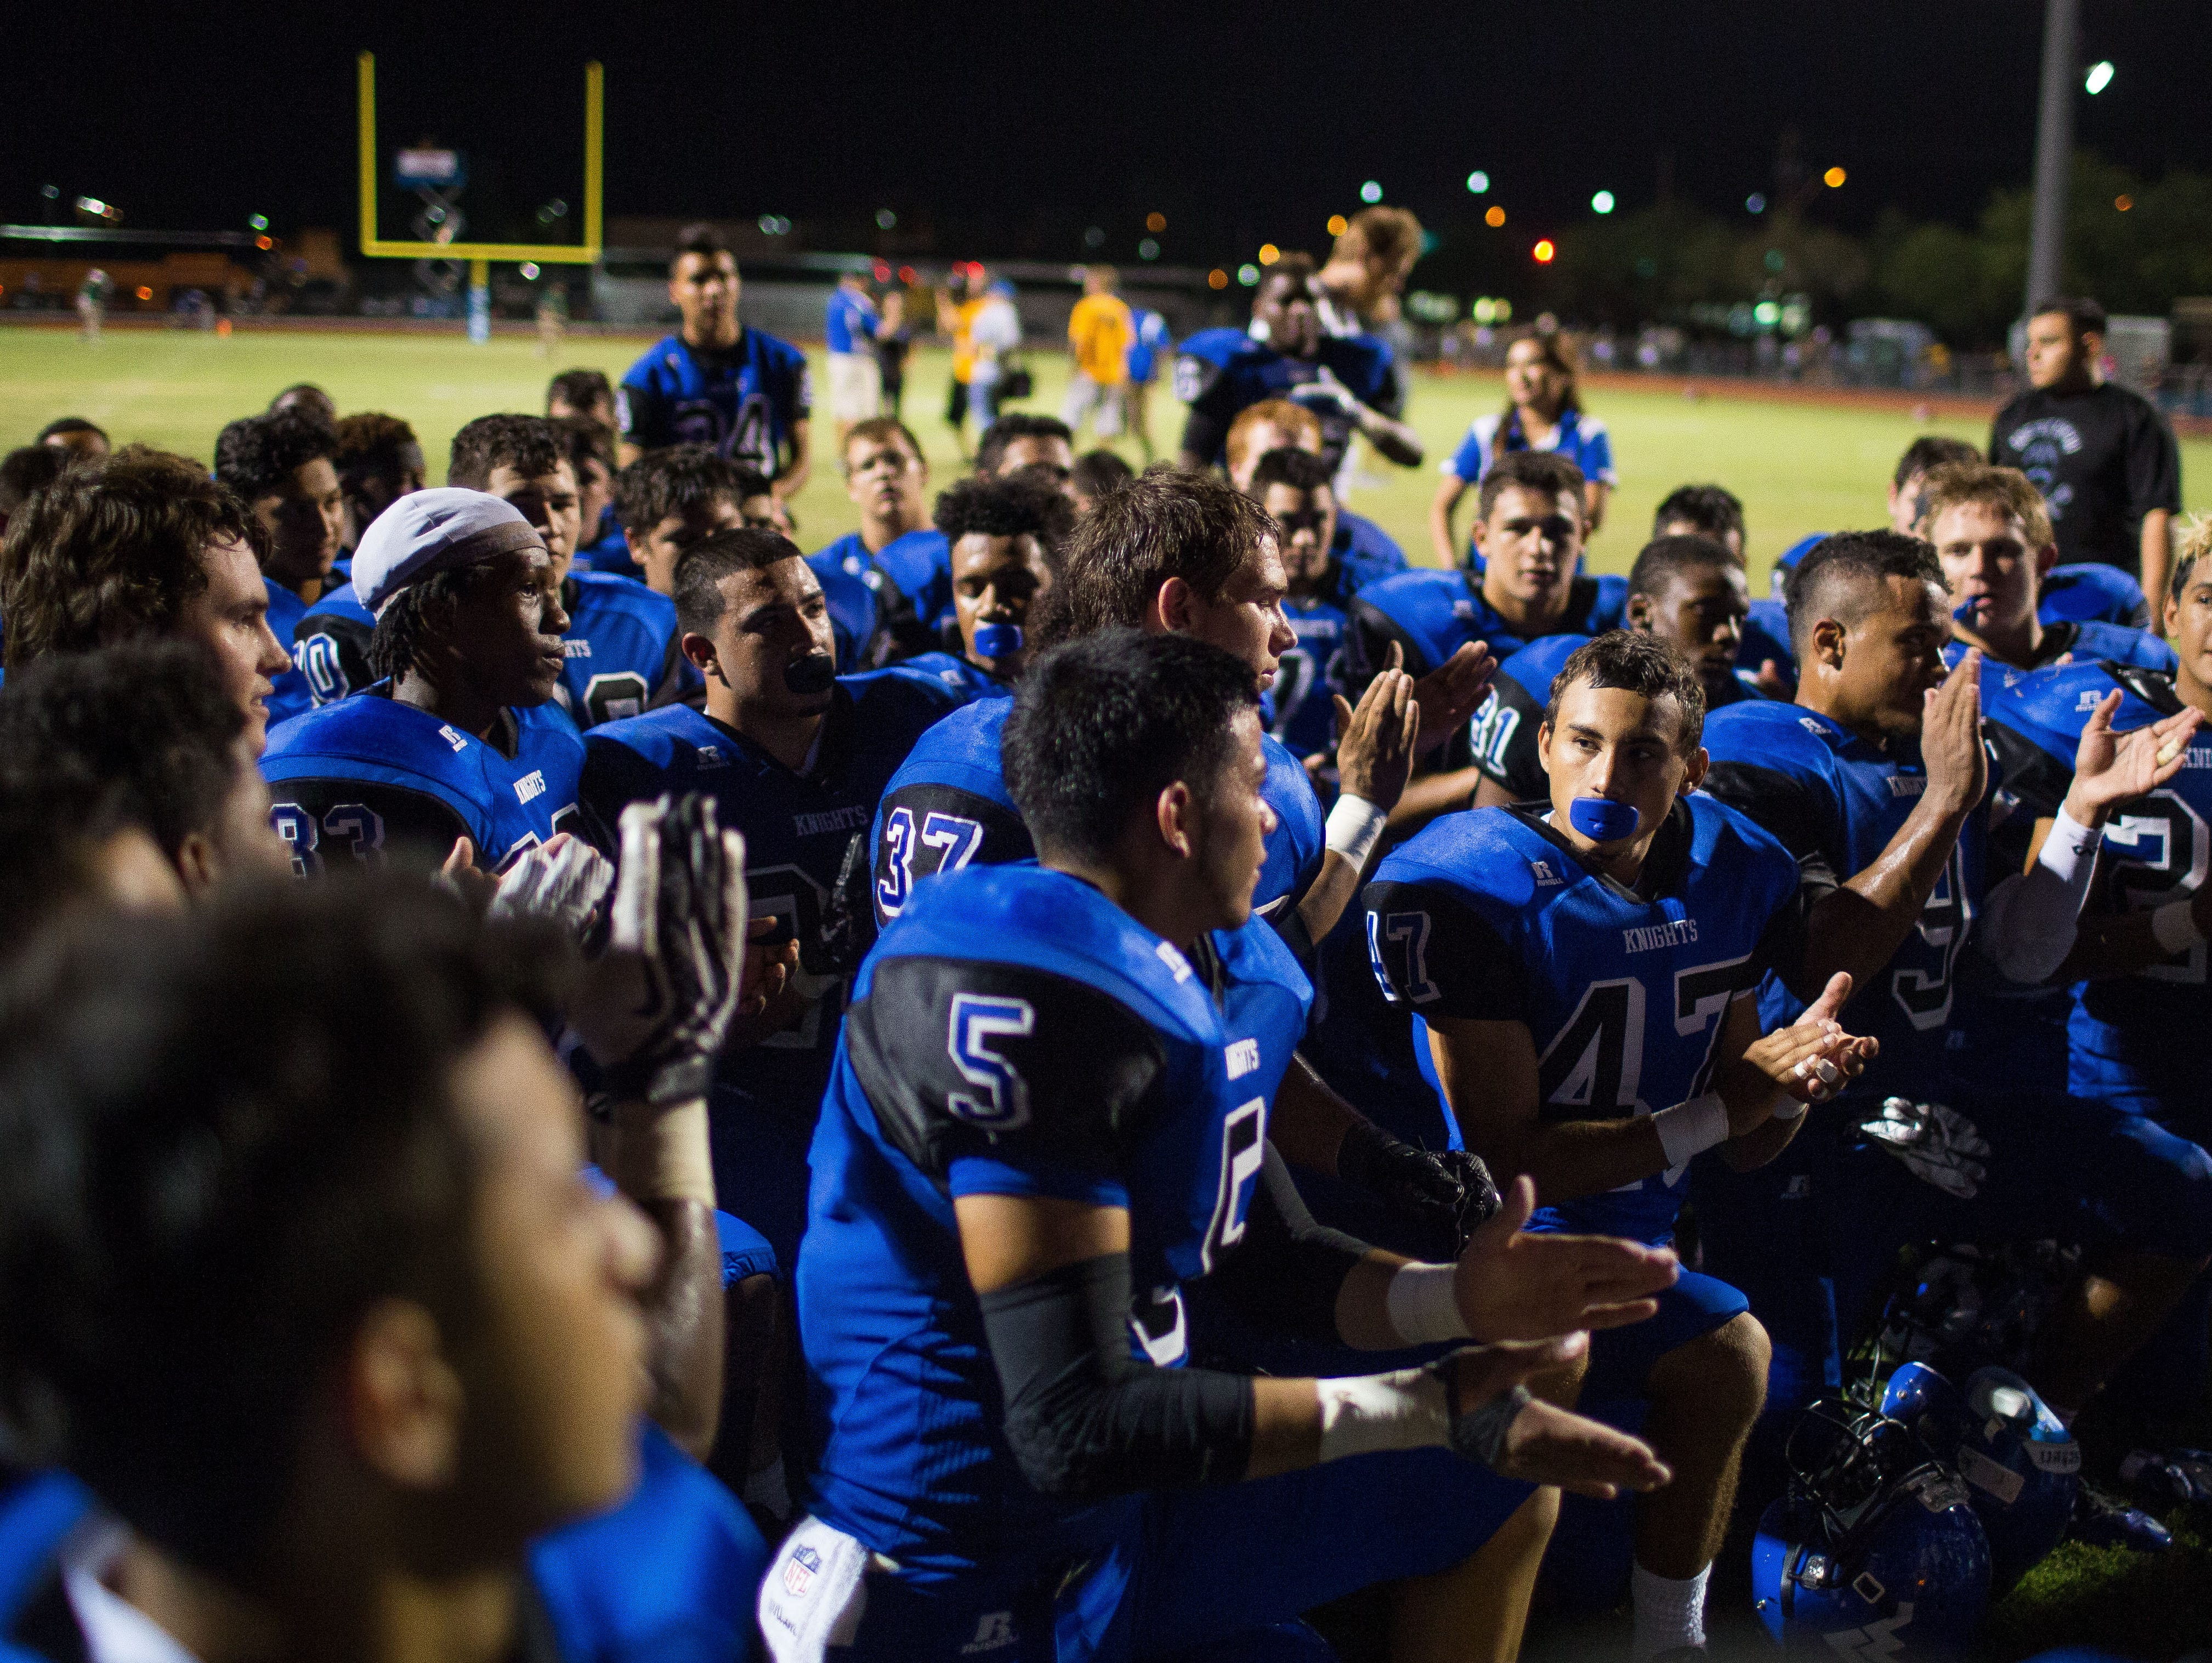 The Westview High School football team takes a knee to listen to coaches post game after their win over Basha High School at a Westview High School football game September 25, 2014 in Avondale.